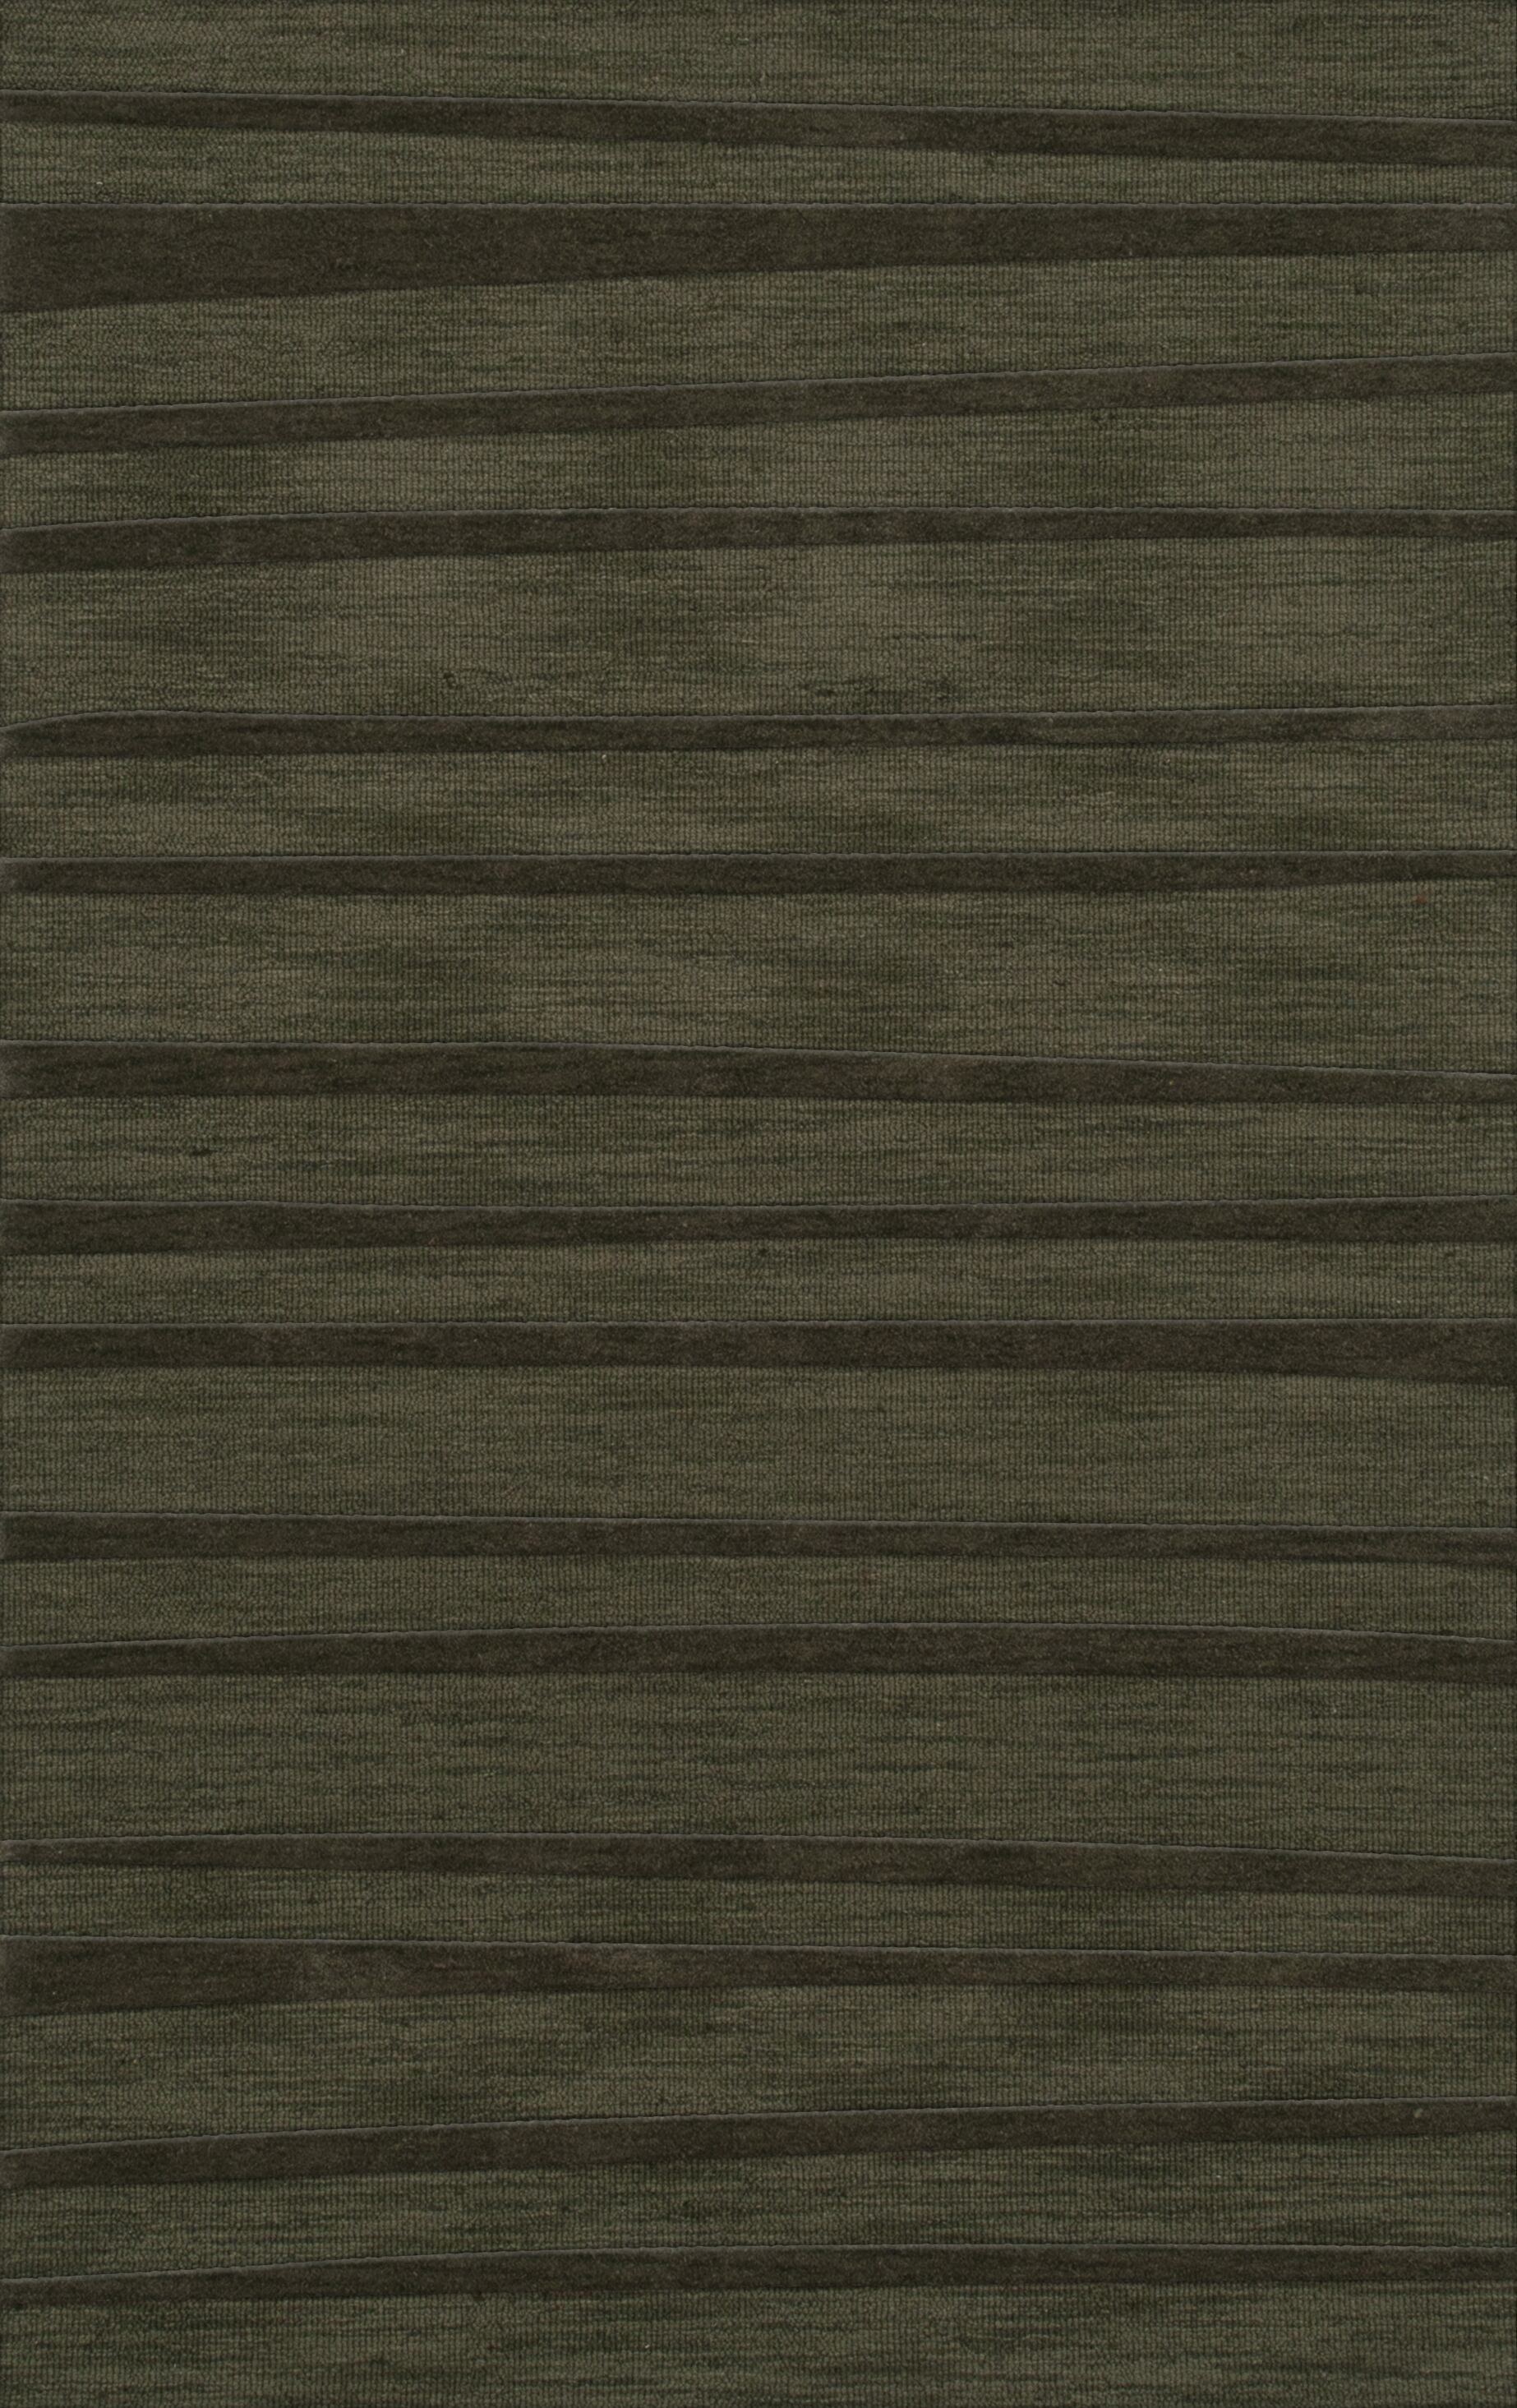 Dover Tufted Wool Fern Area Rug Rug Size: Rectangle 4' x 6'